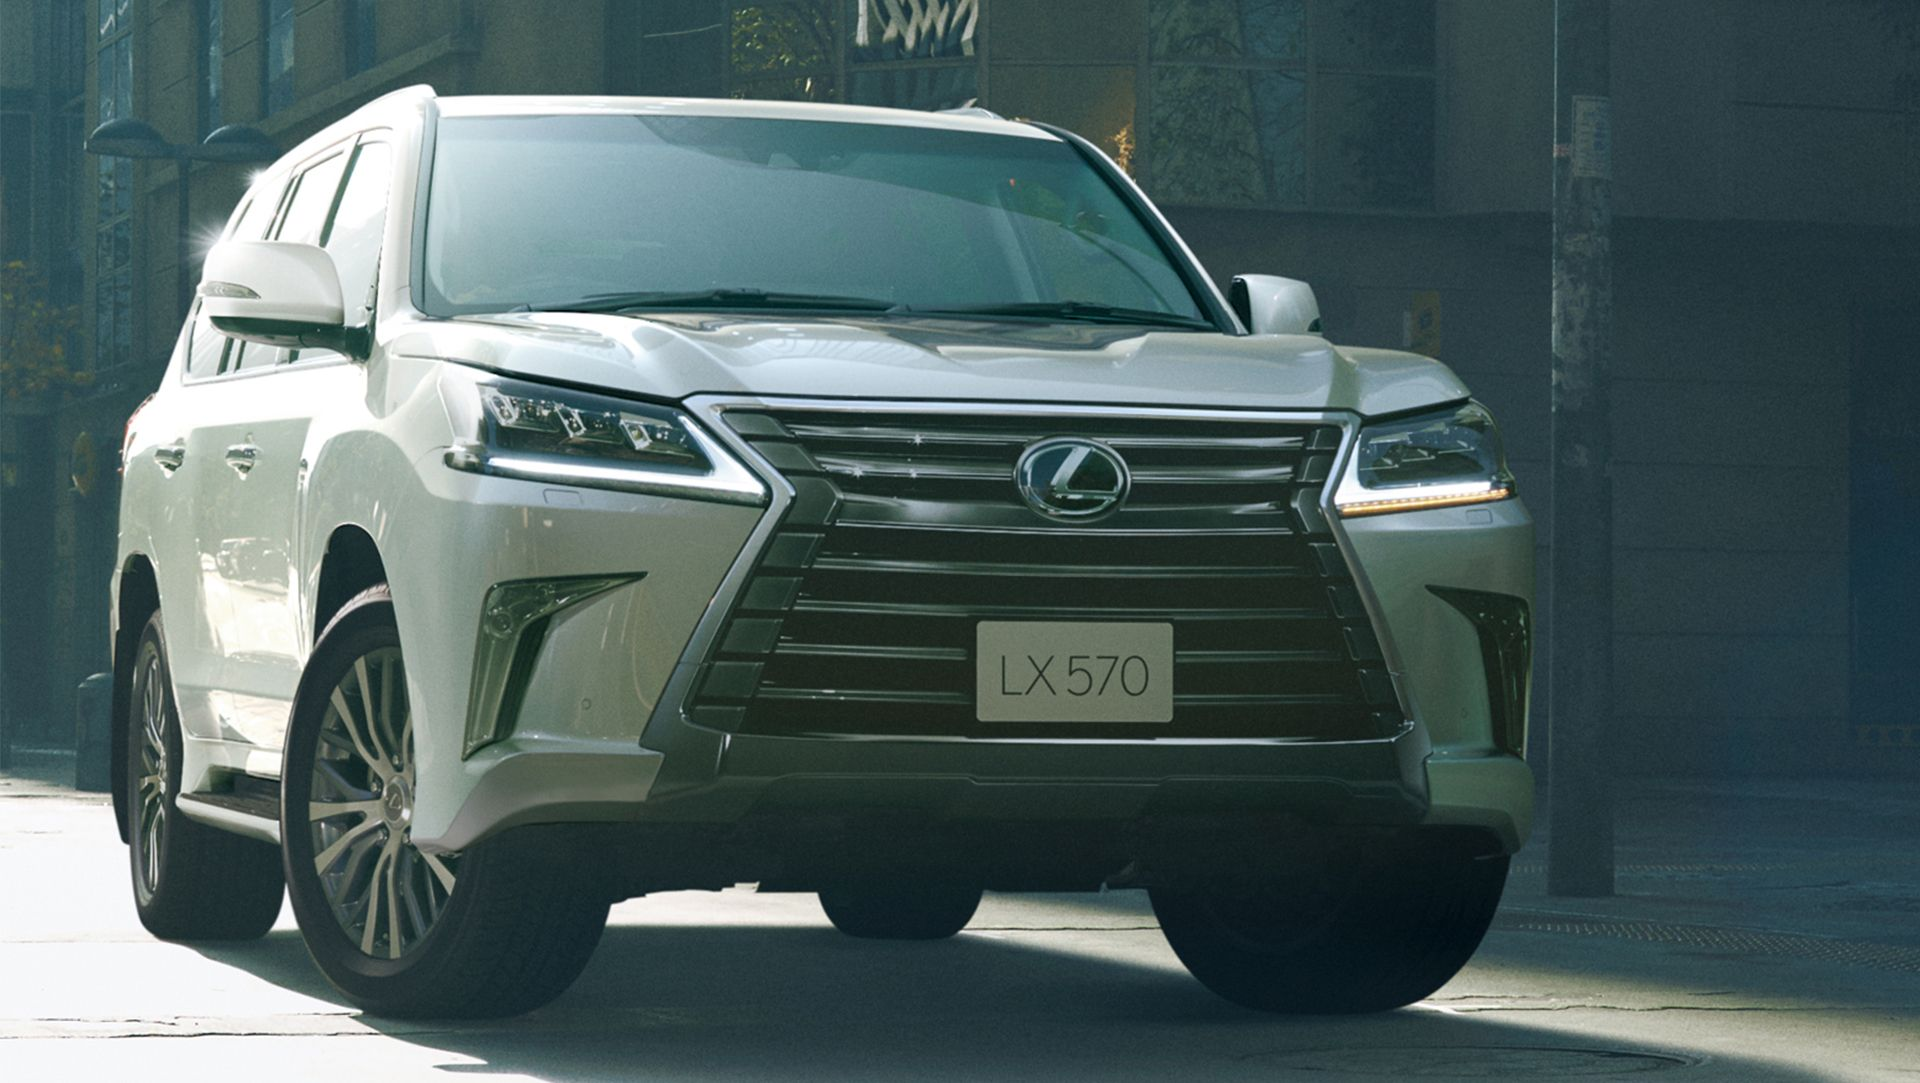 Japan also gets a facelifted lexus lx 570